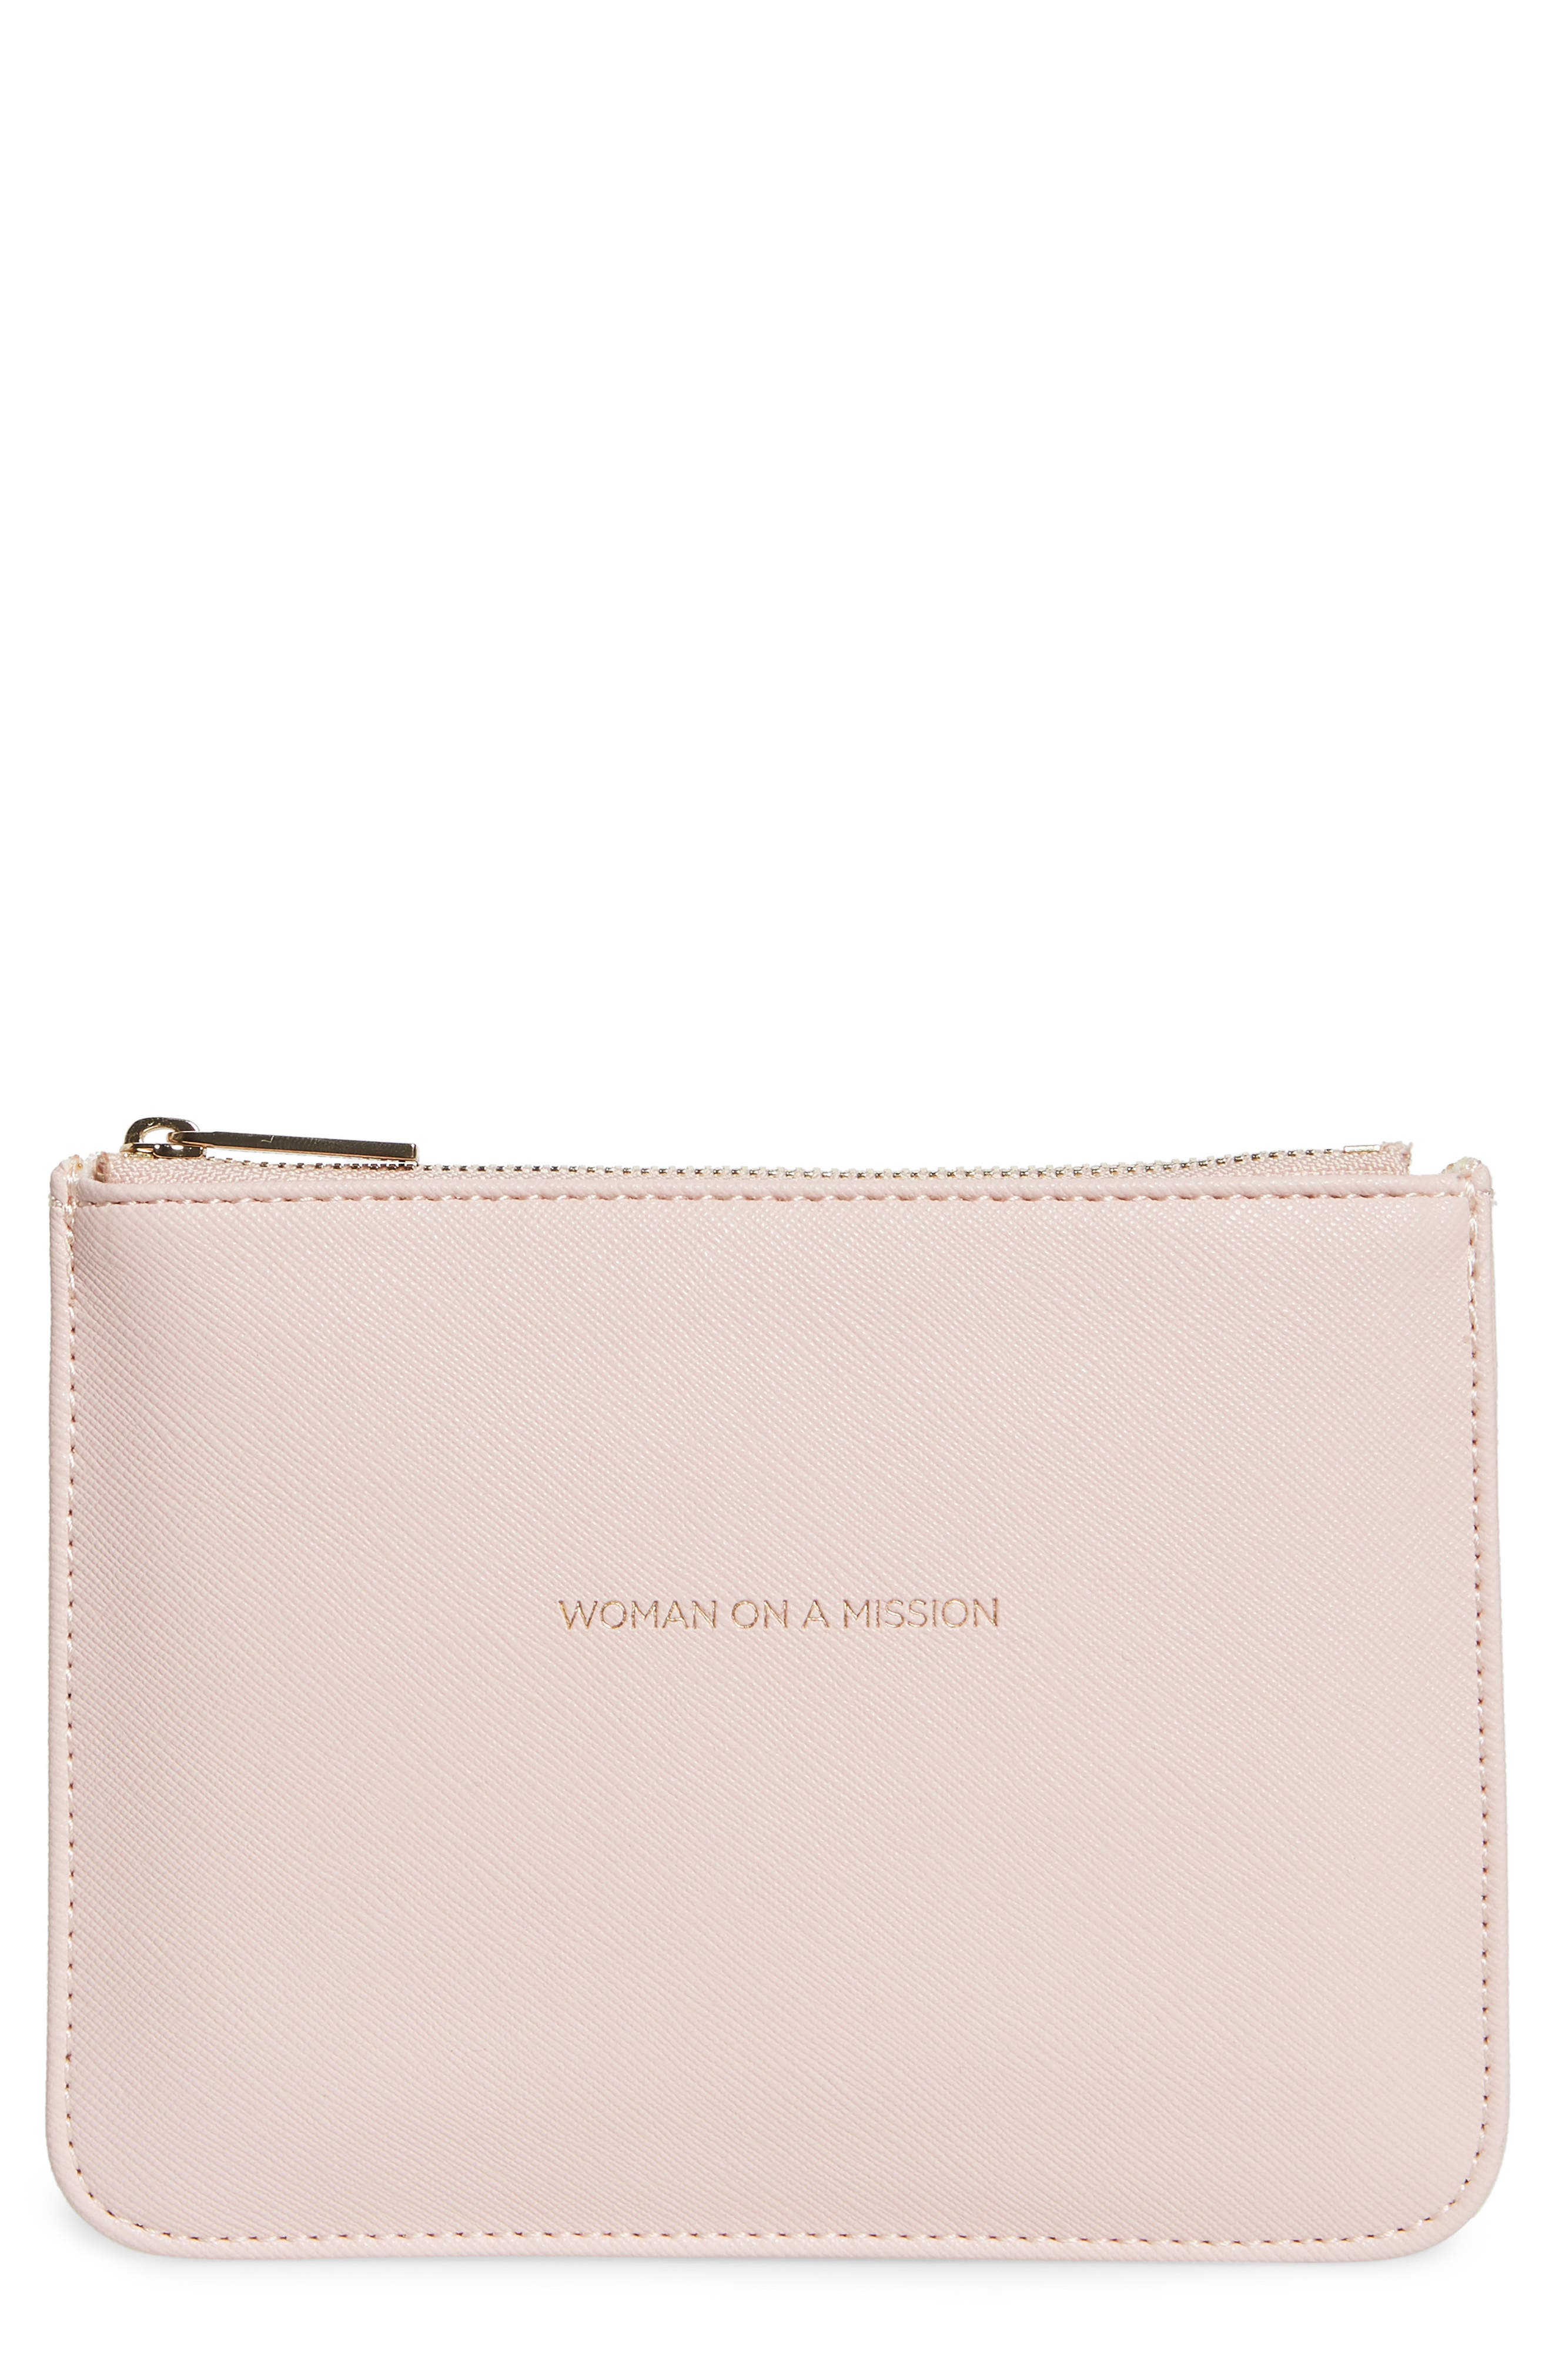 Small Faux Leather Zip Pouch,                         Main,                         color, BLUSH - WOMAN ON A MISSION